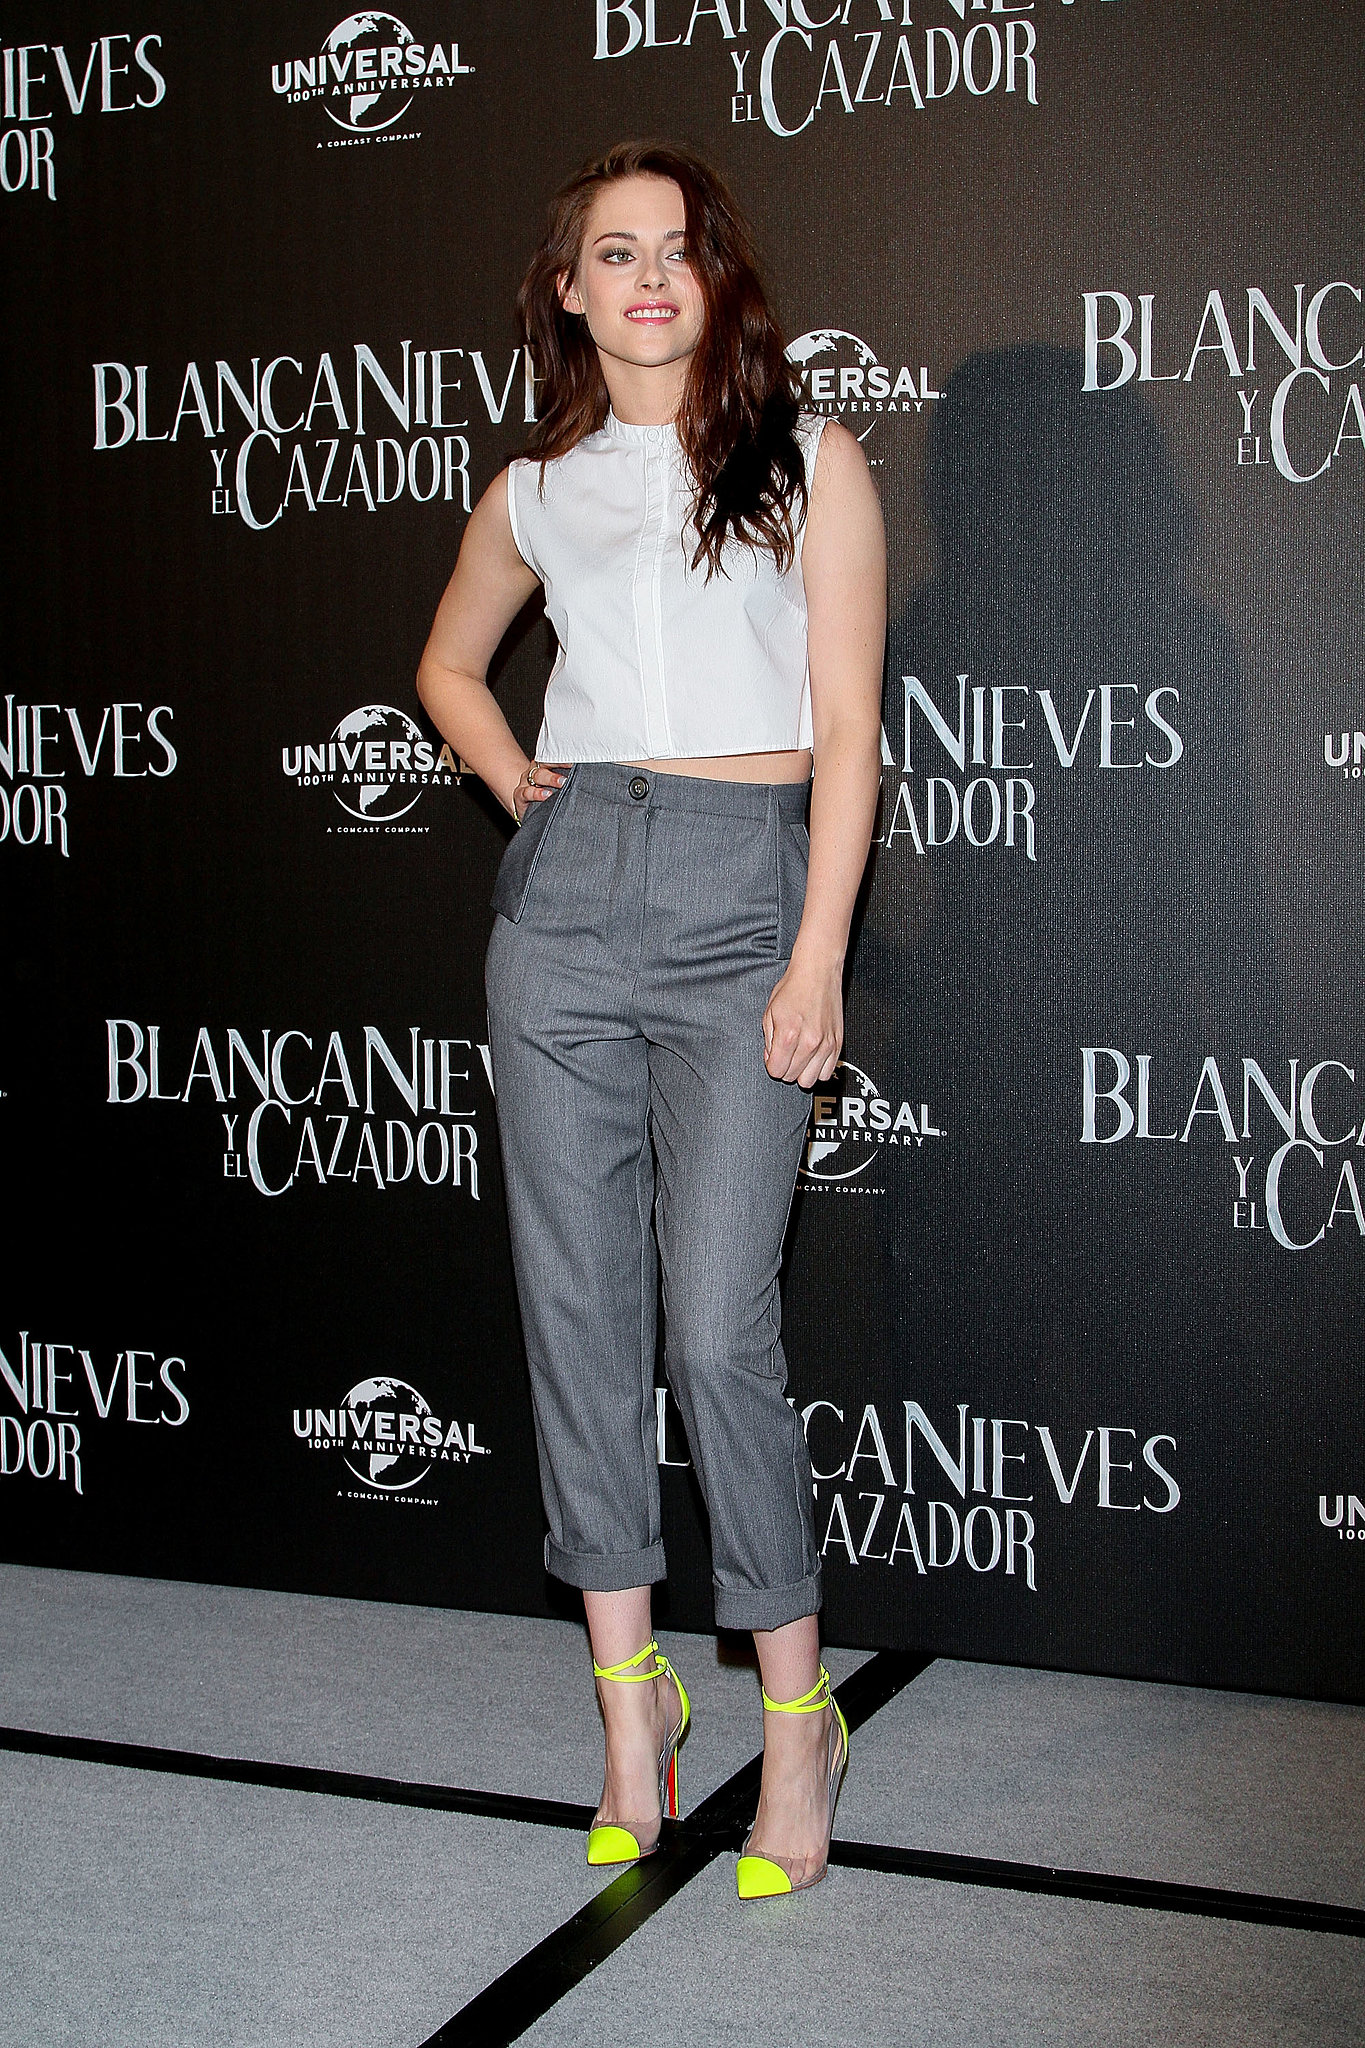 For a Snow White and the Huntsman 2012 press conference in Mexico City, Stewart posed in a menswear-inspired outfit: cropped white shirt by Marios Schwab, Vivienne Westwood gray cropped trousers, and a pop of color via neon Christian Louboutin ankle-strap heels.